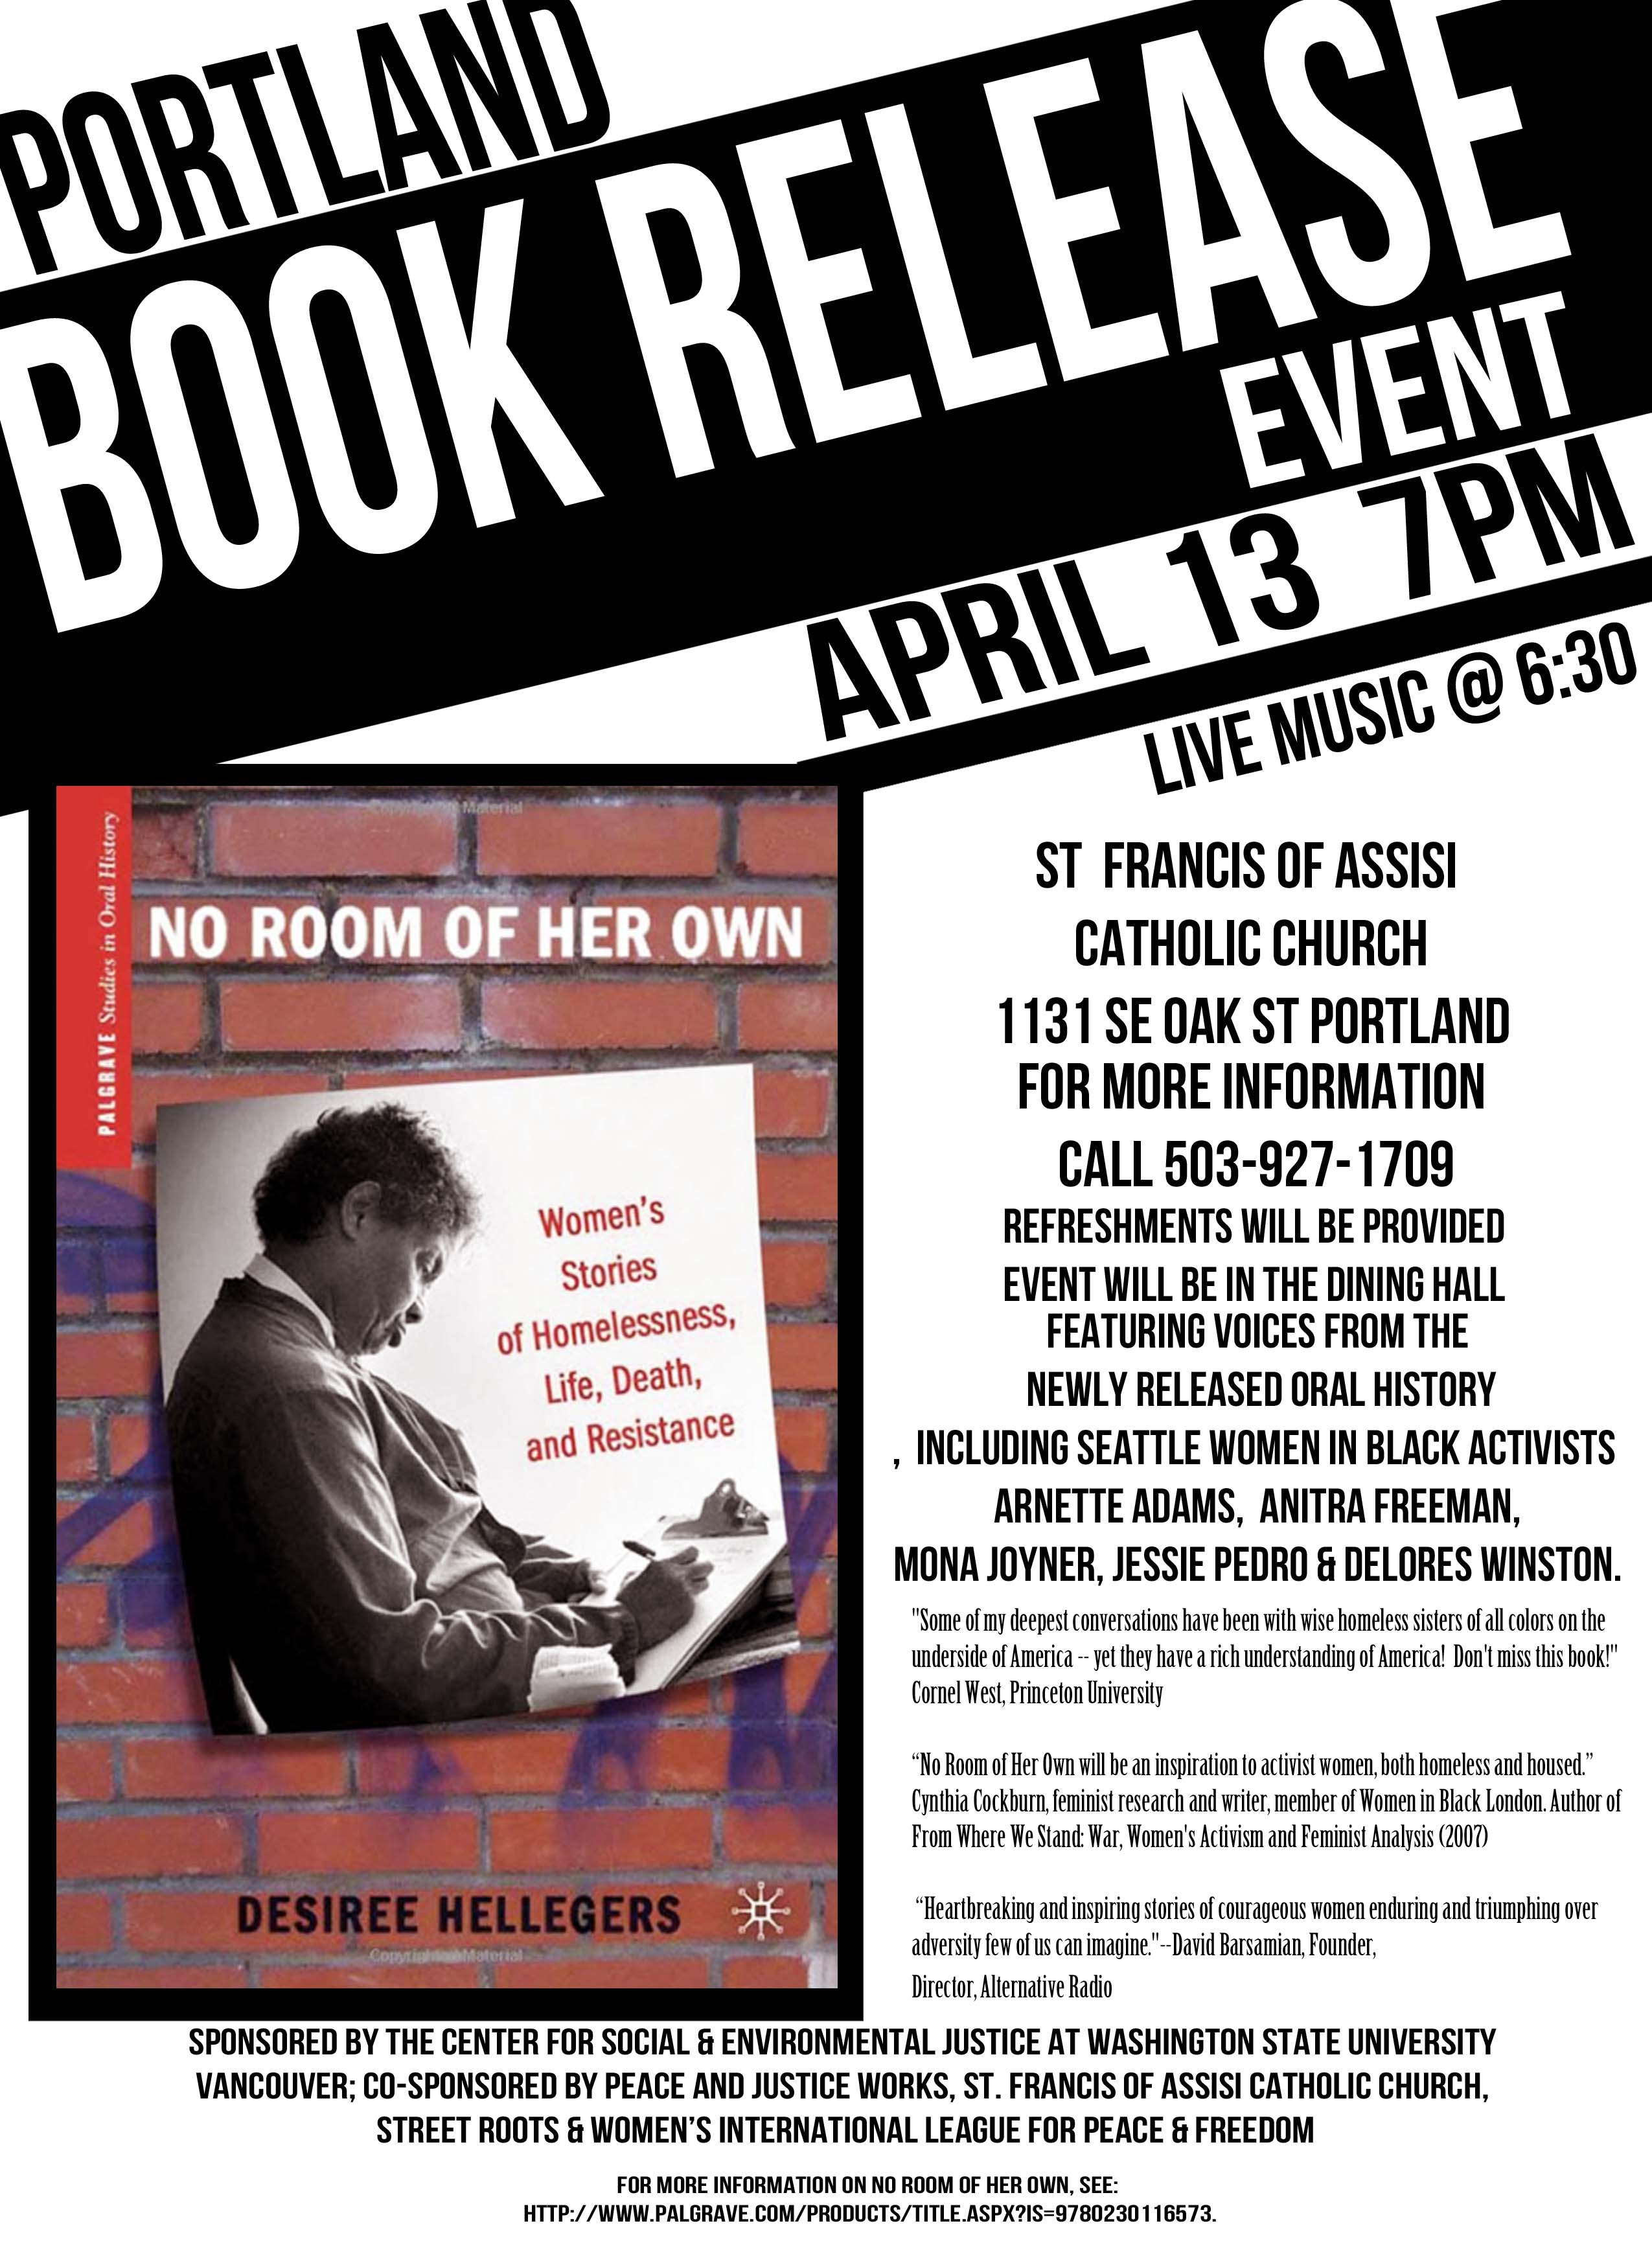 Women and Homelessness Book Release Friday April 13 2012